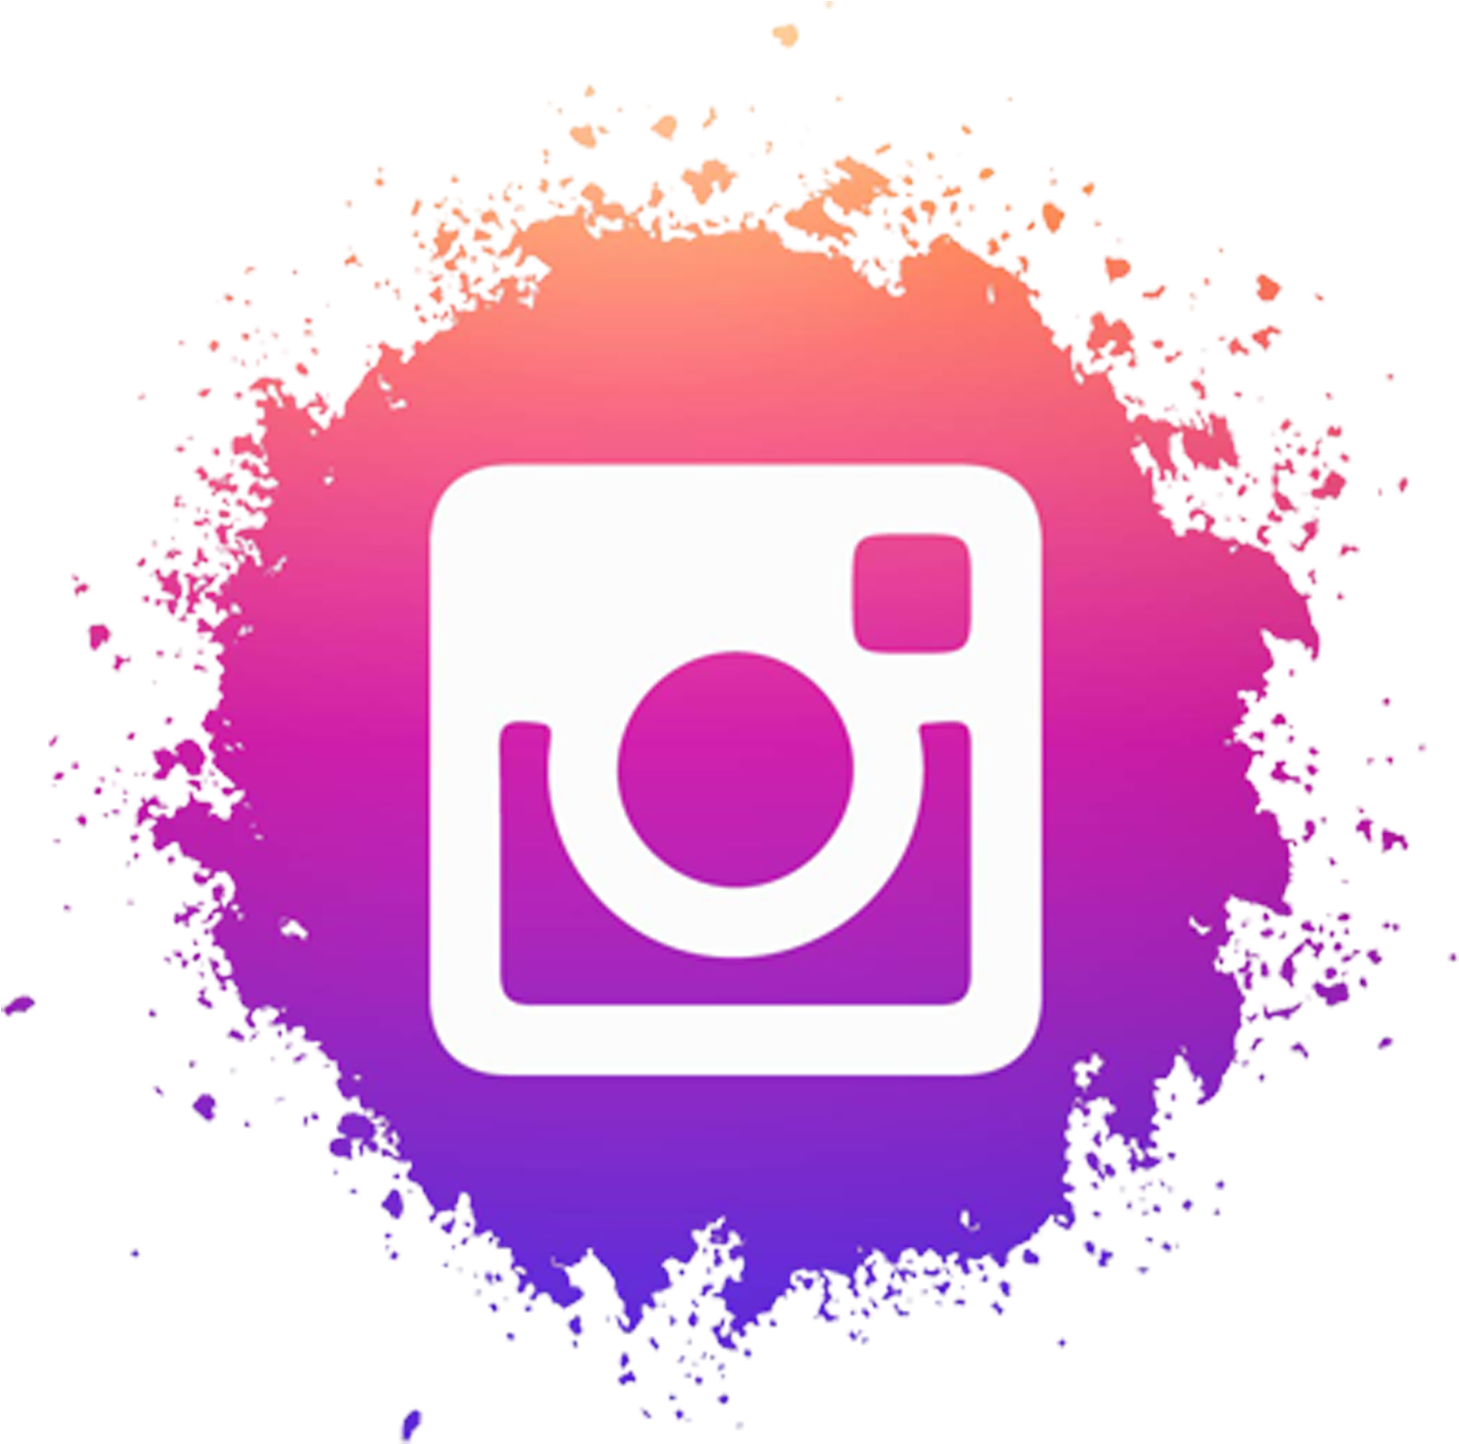 Download Hd Buy 100 Instagram Likes Circle Icon Instagram Logo Png Transparent Png Image Nicepng Com